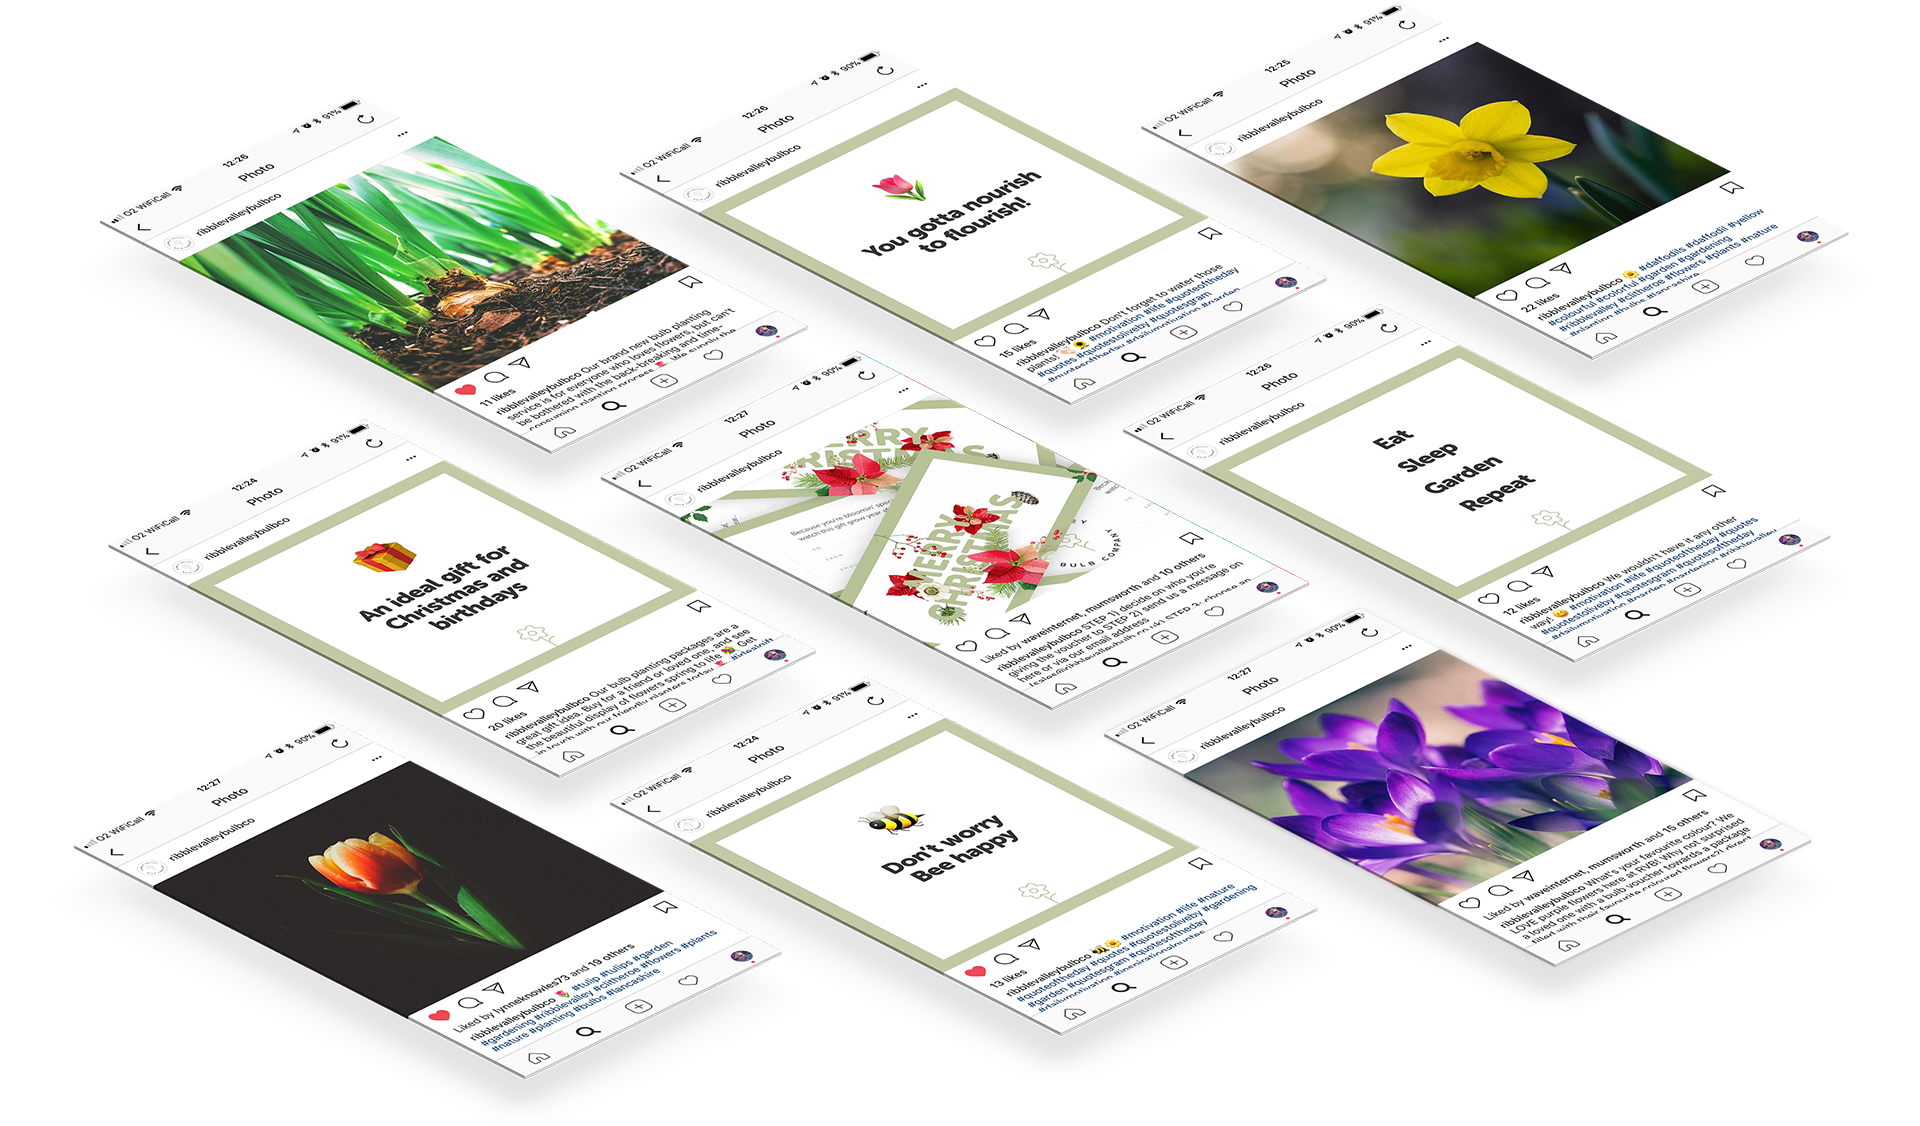 Launch campaign and social media management for Ribble Valley Bulb Company